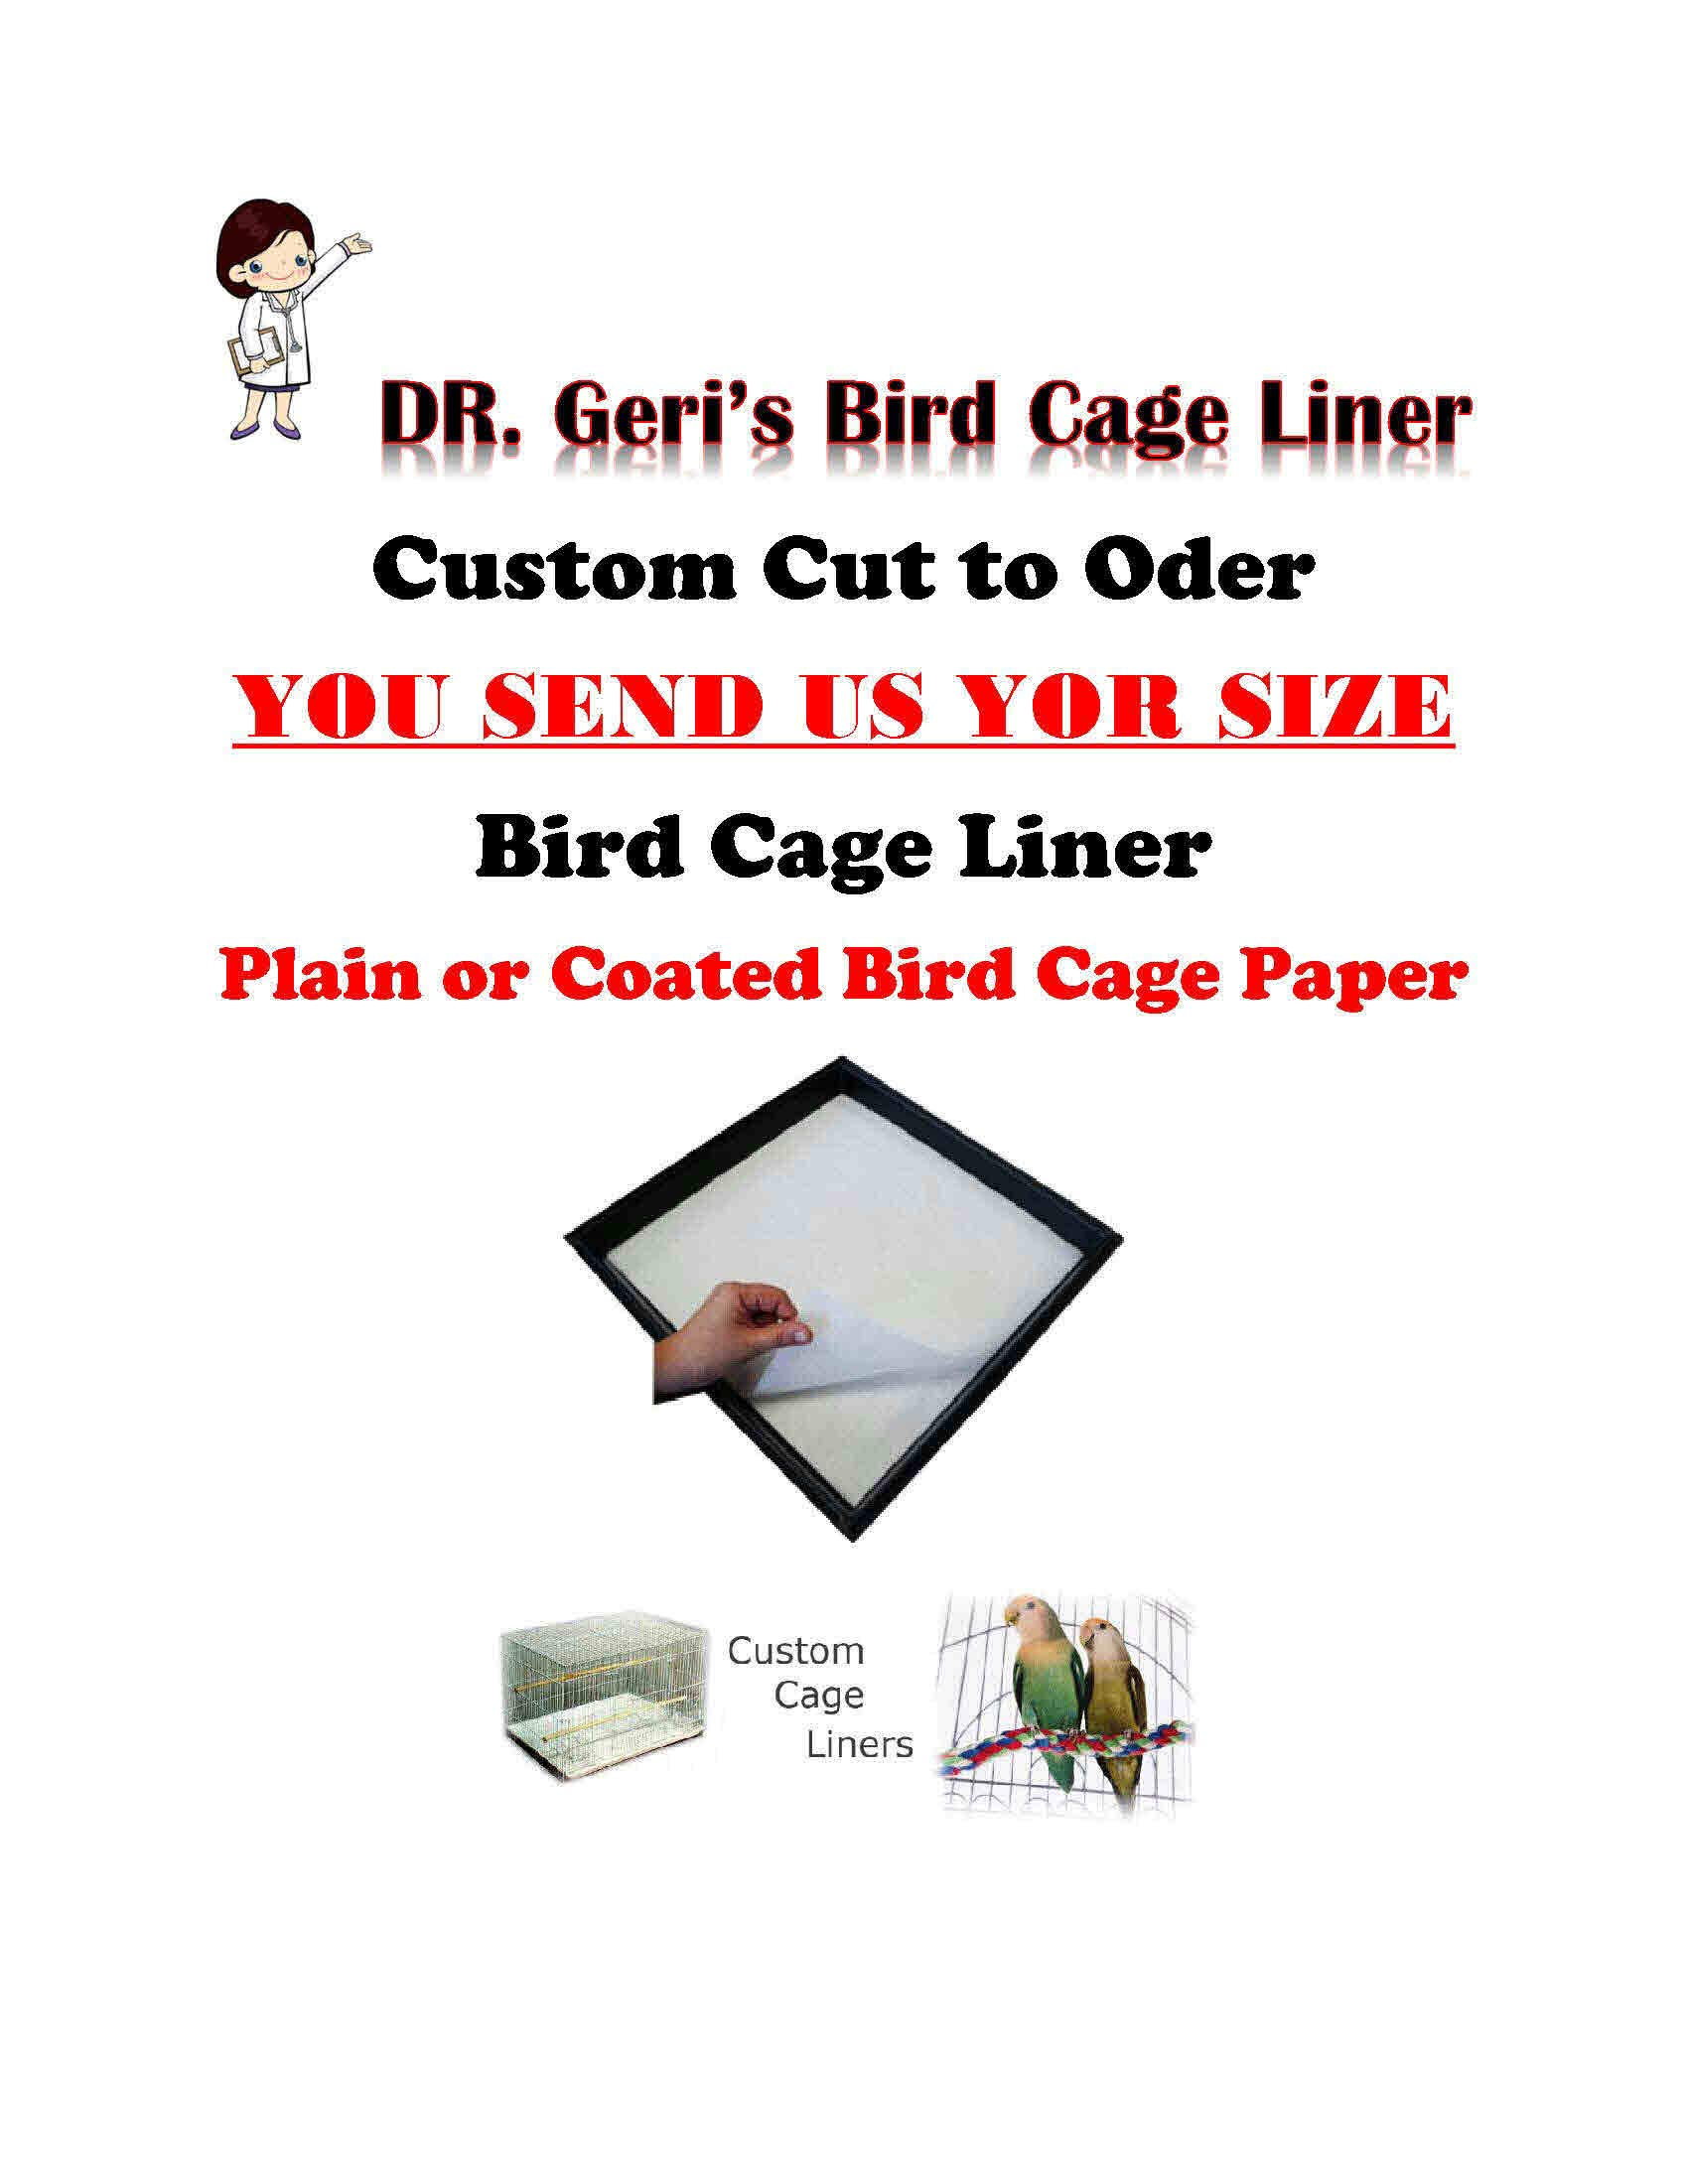 Dr.Geri's Bird Cage Liner Bird Cage Liners WE Custom Cut to Your Specific Size Coated 40lb Paper and 60lb Plain Paper-Message US with Your Size (Coated up to 30x30) by Dr.Geri's